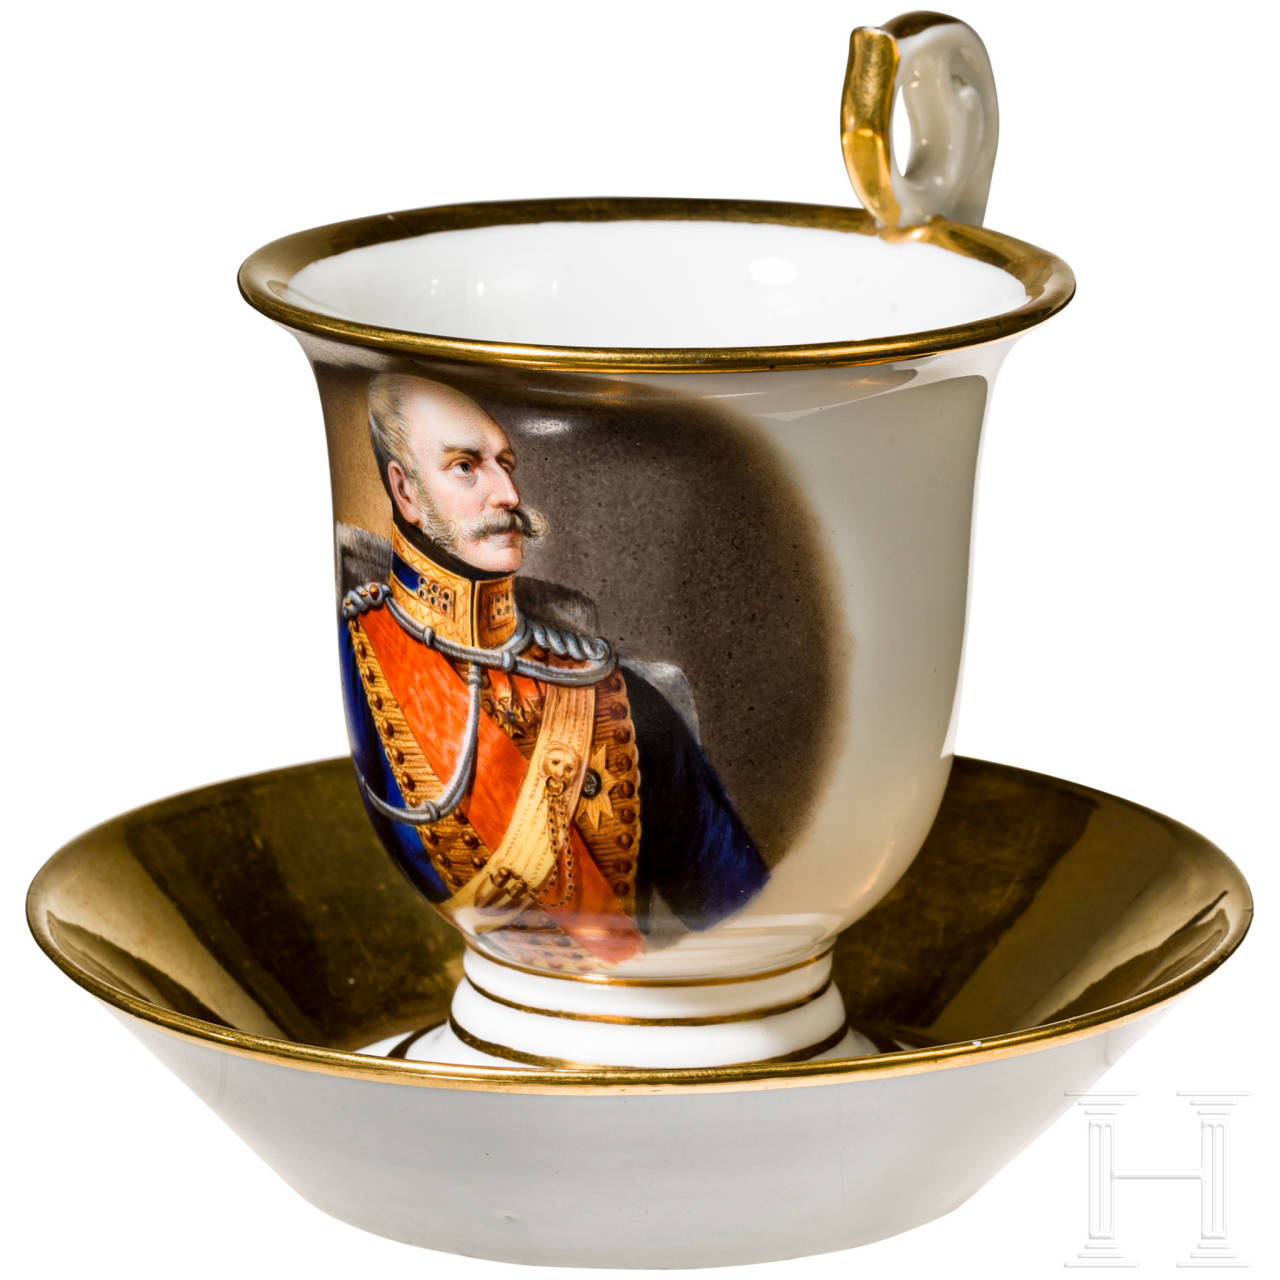 Ernst August I, King of Hanover - portrait cup, c. 1840